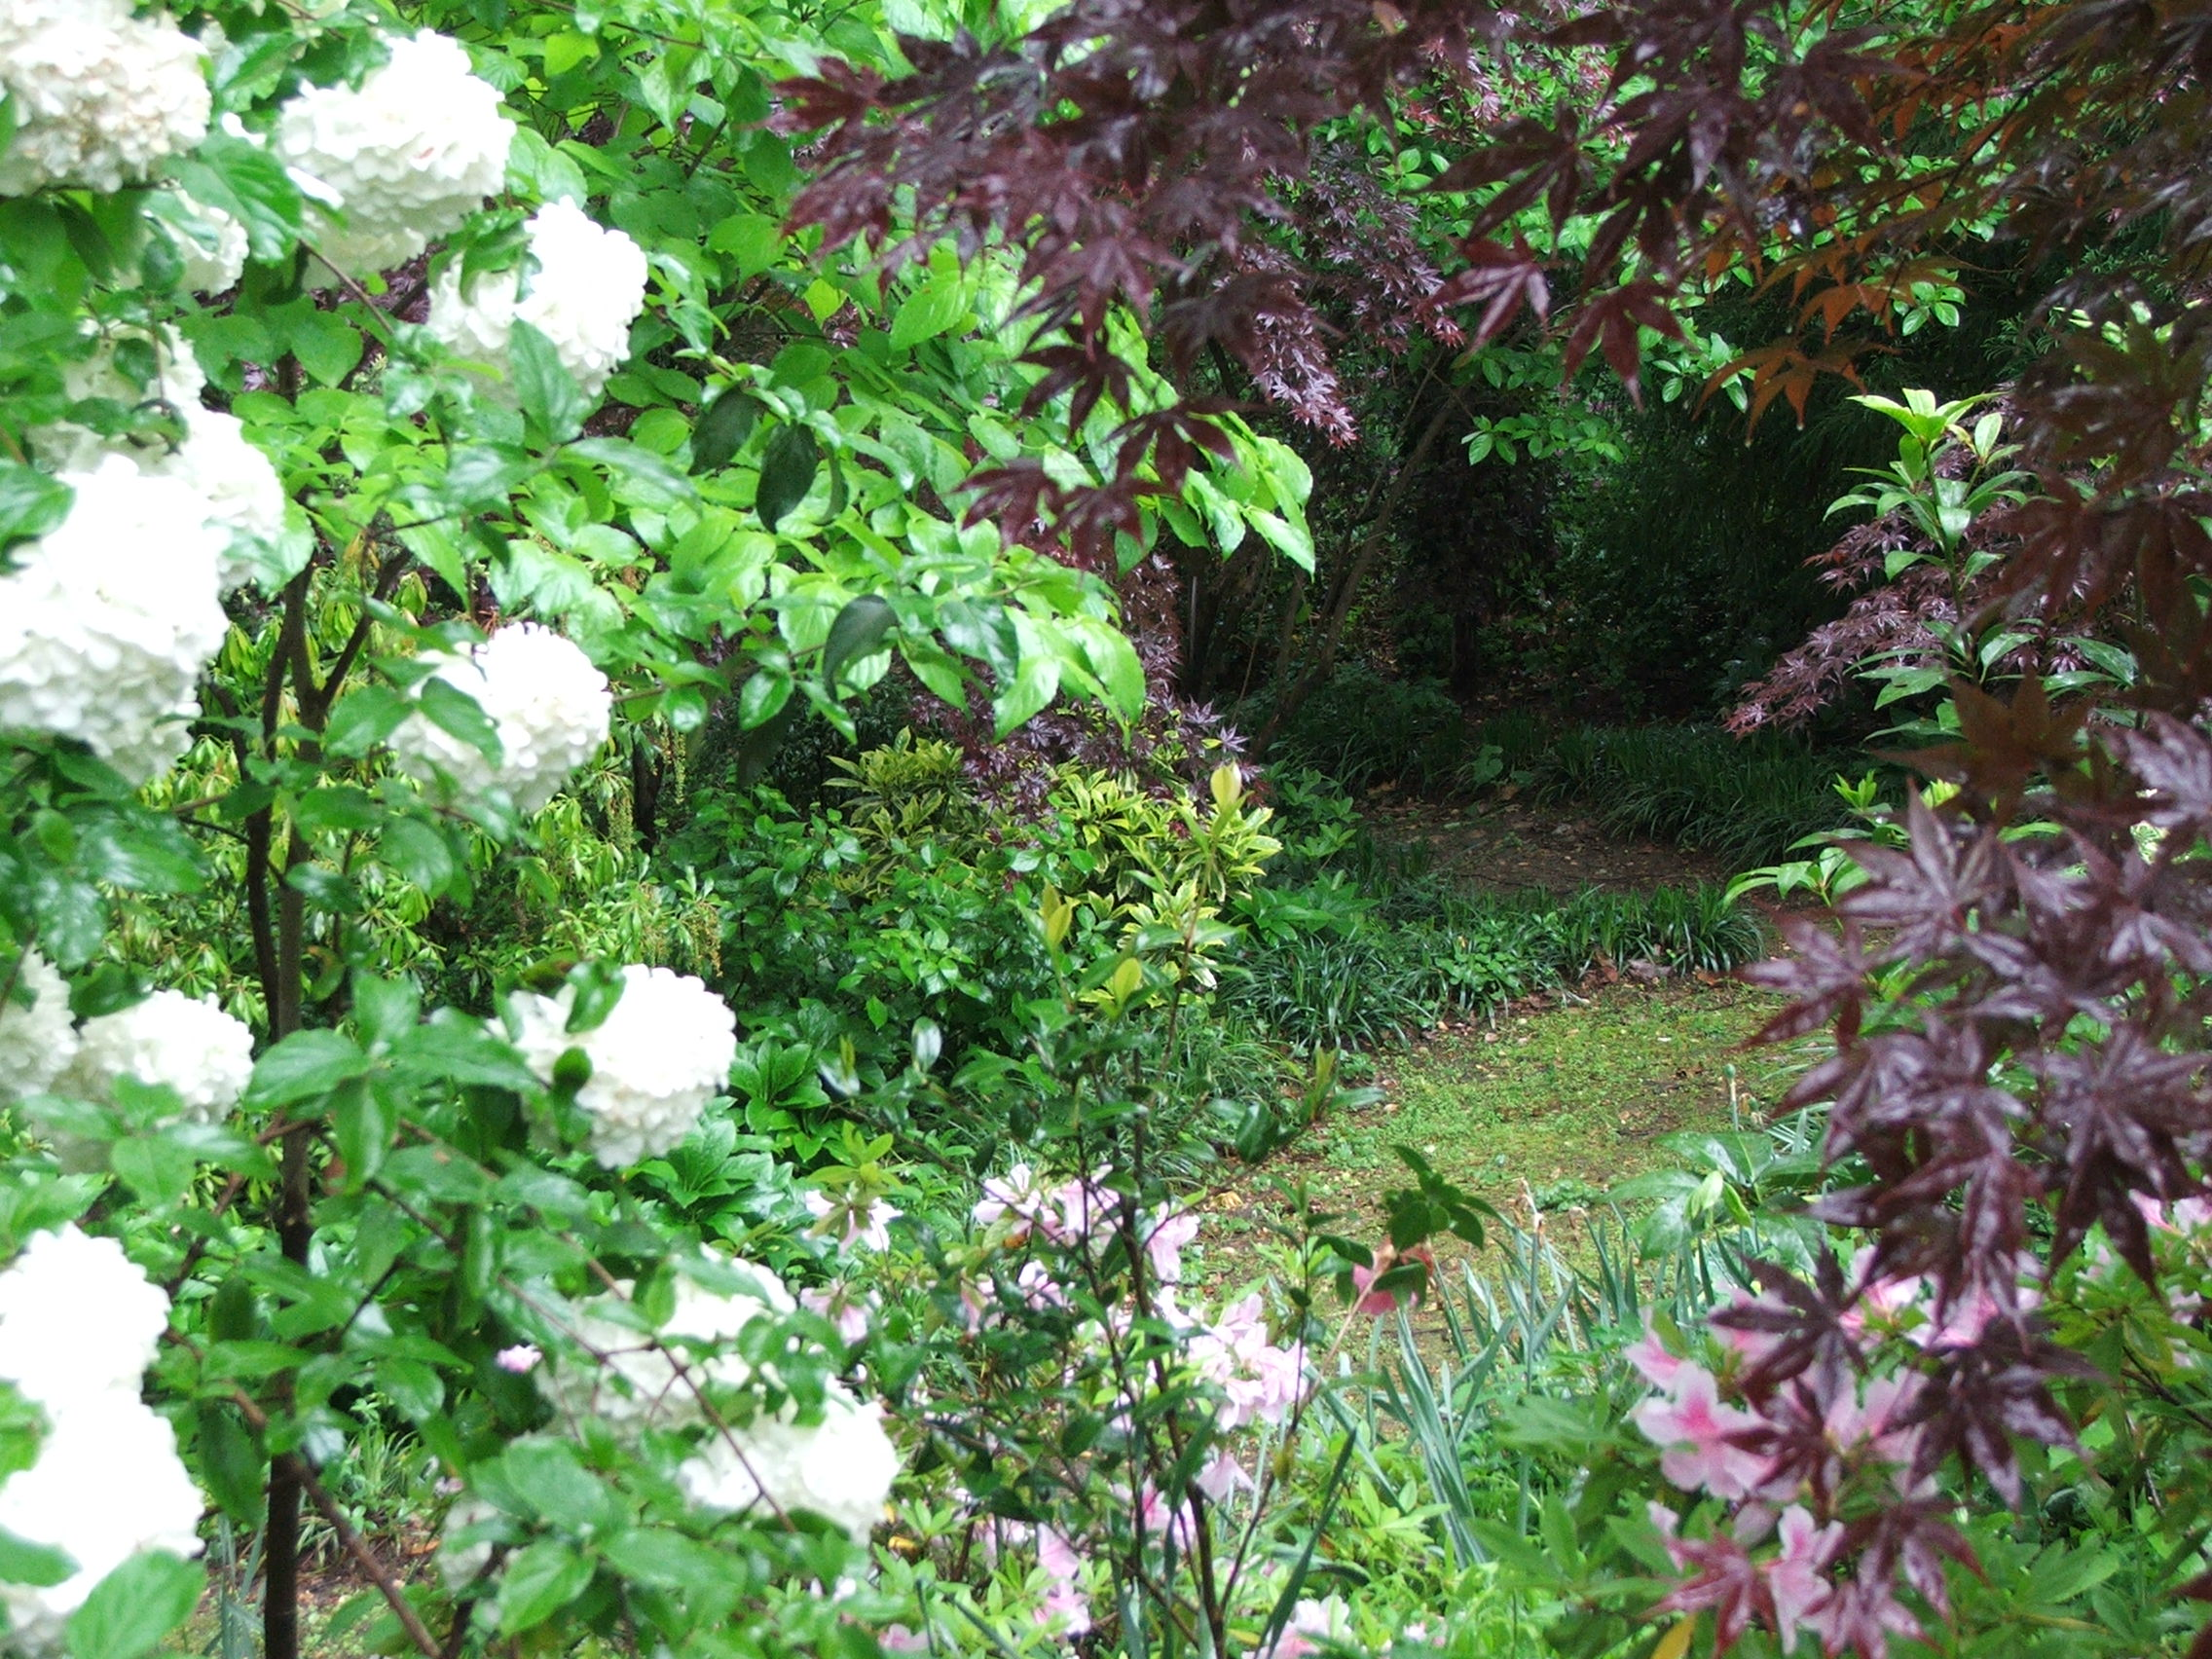 Woodland Cottage's Gardens on Tour